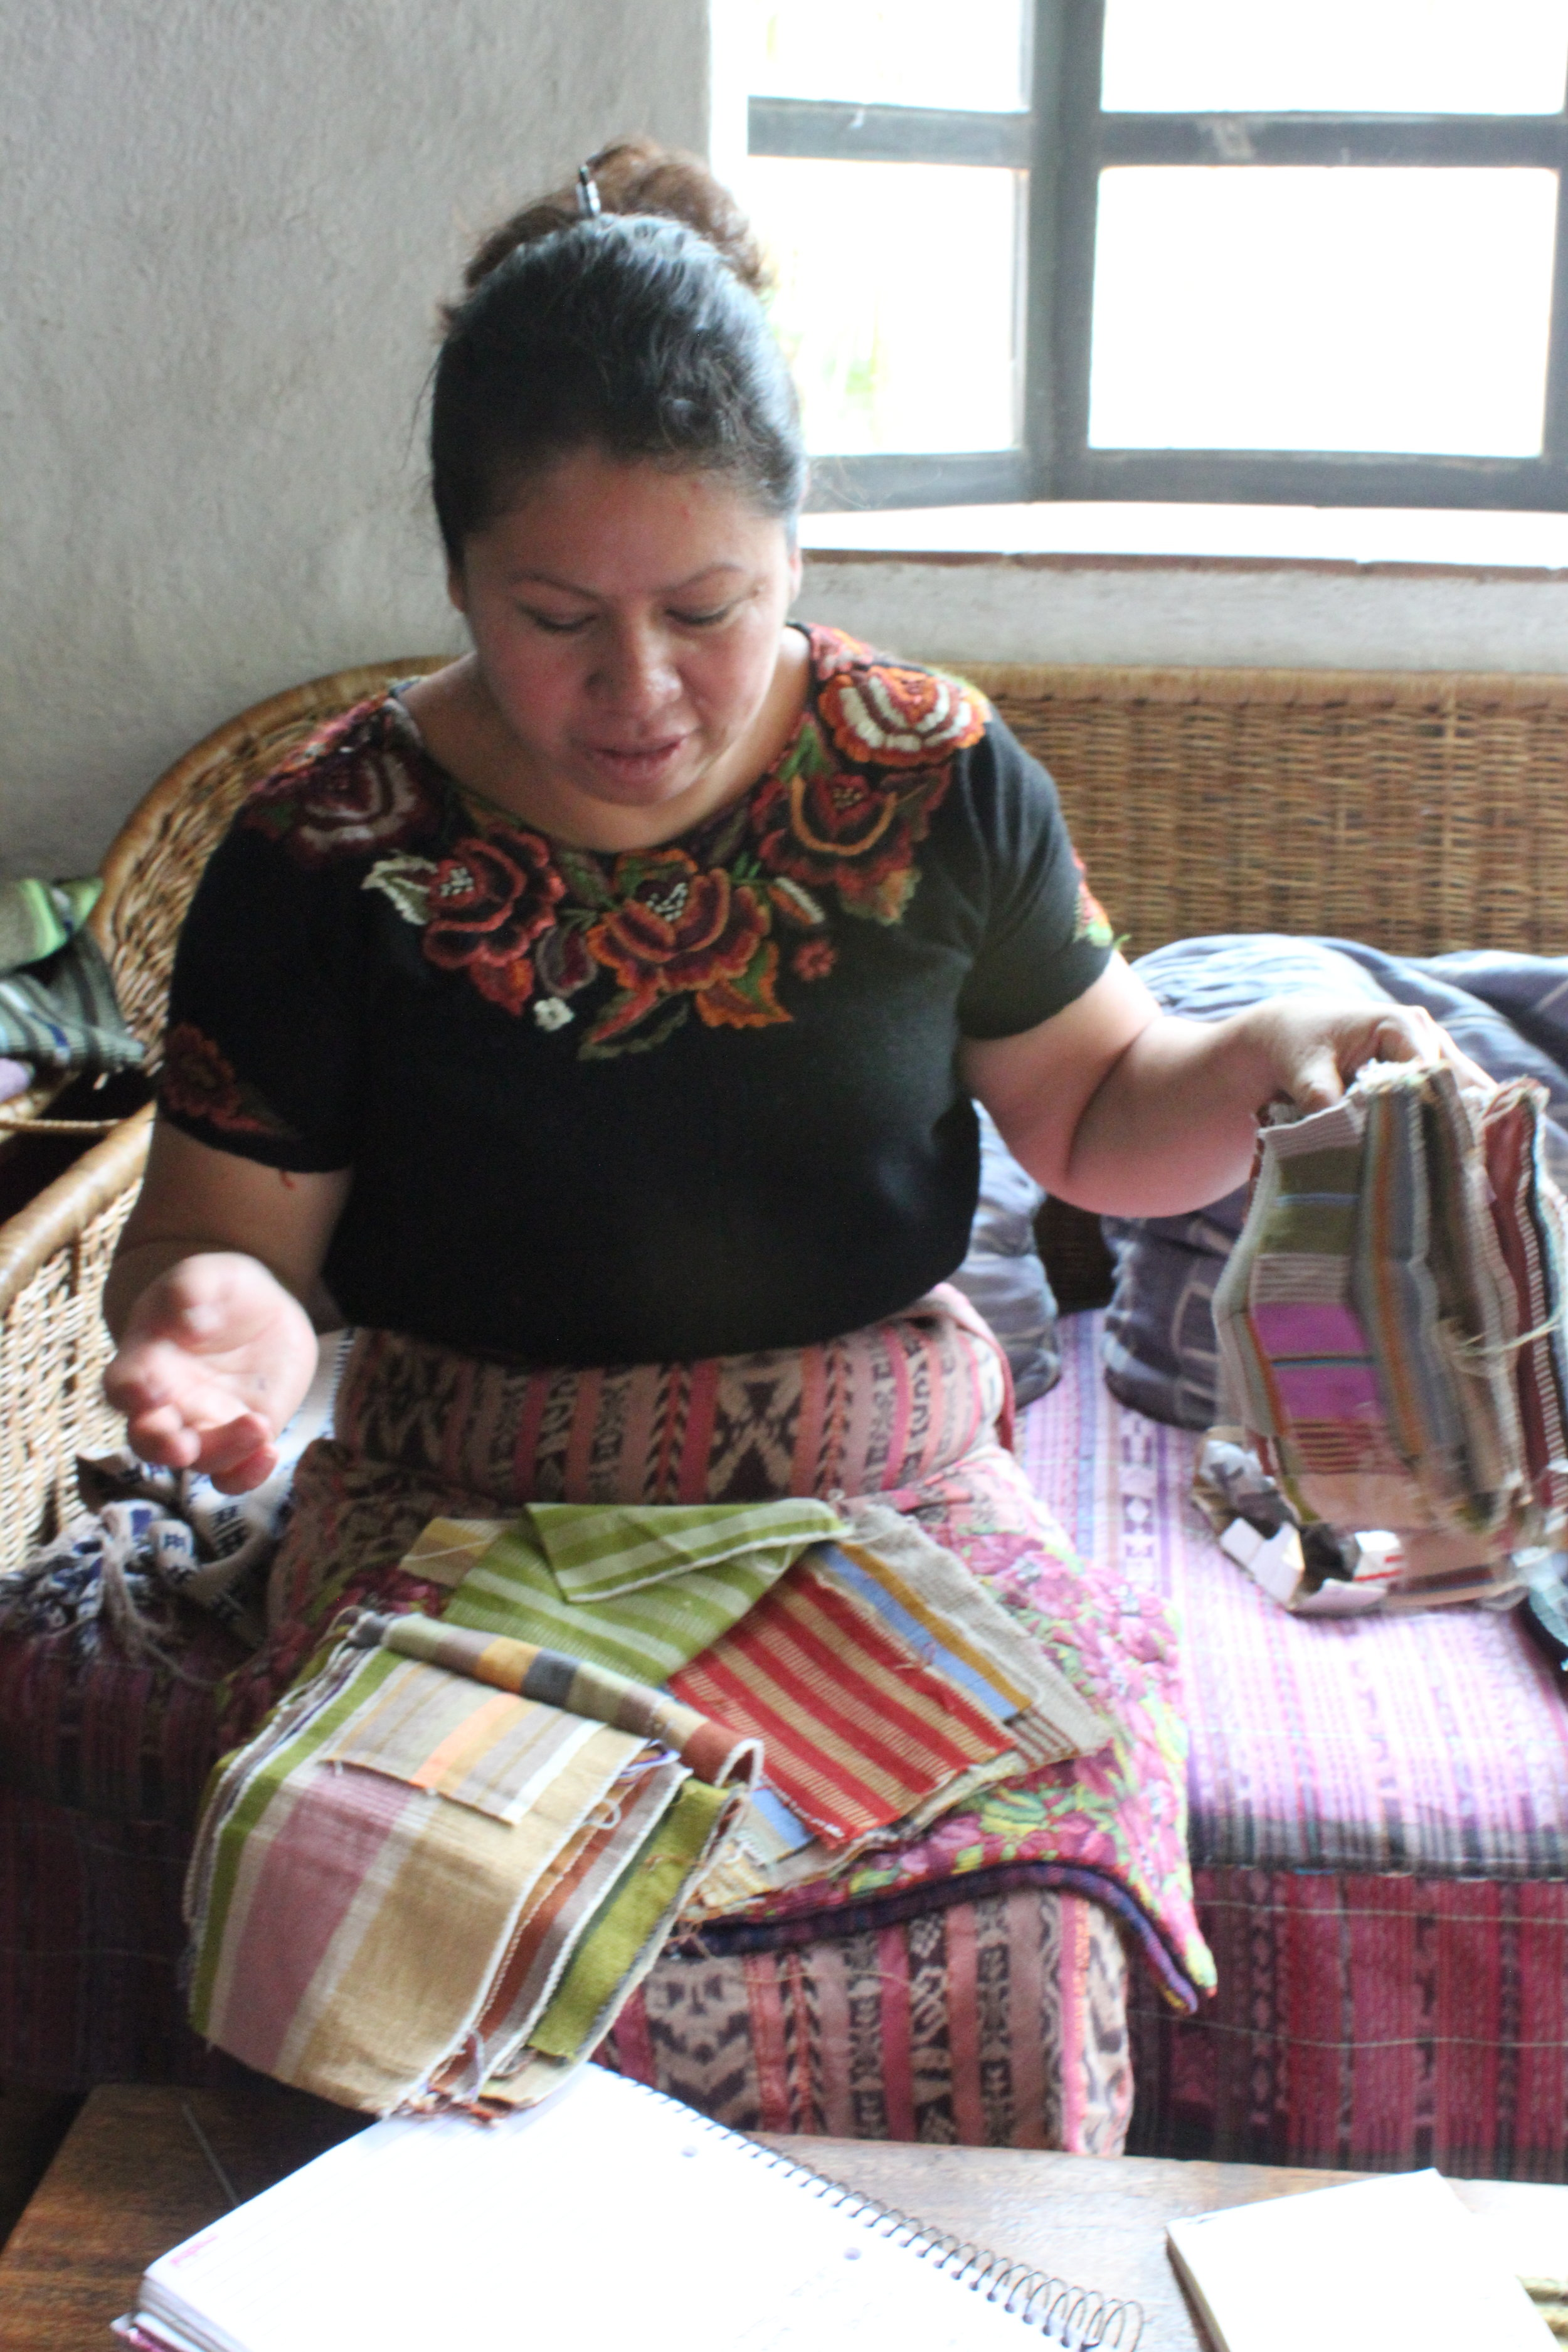 Natural Dye colors and sources used on cotton in Guatemala by Living Threads Co. partner artisans